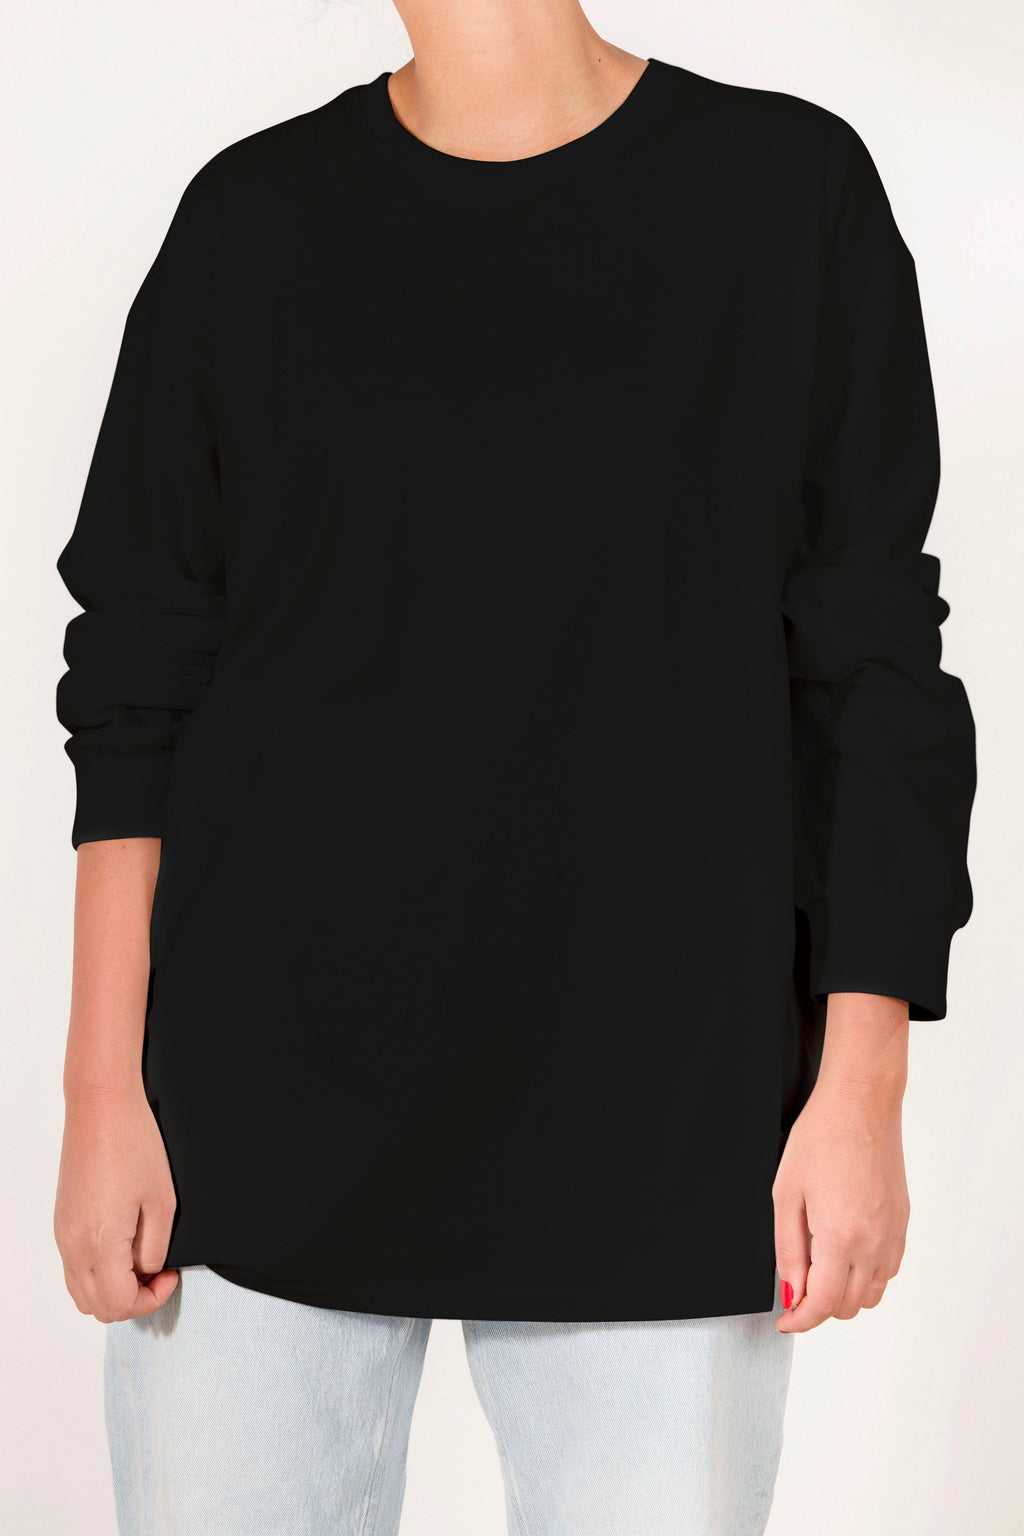 Alpha Basic Longsleeve Tshirt - Black